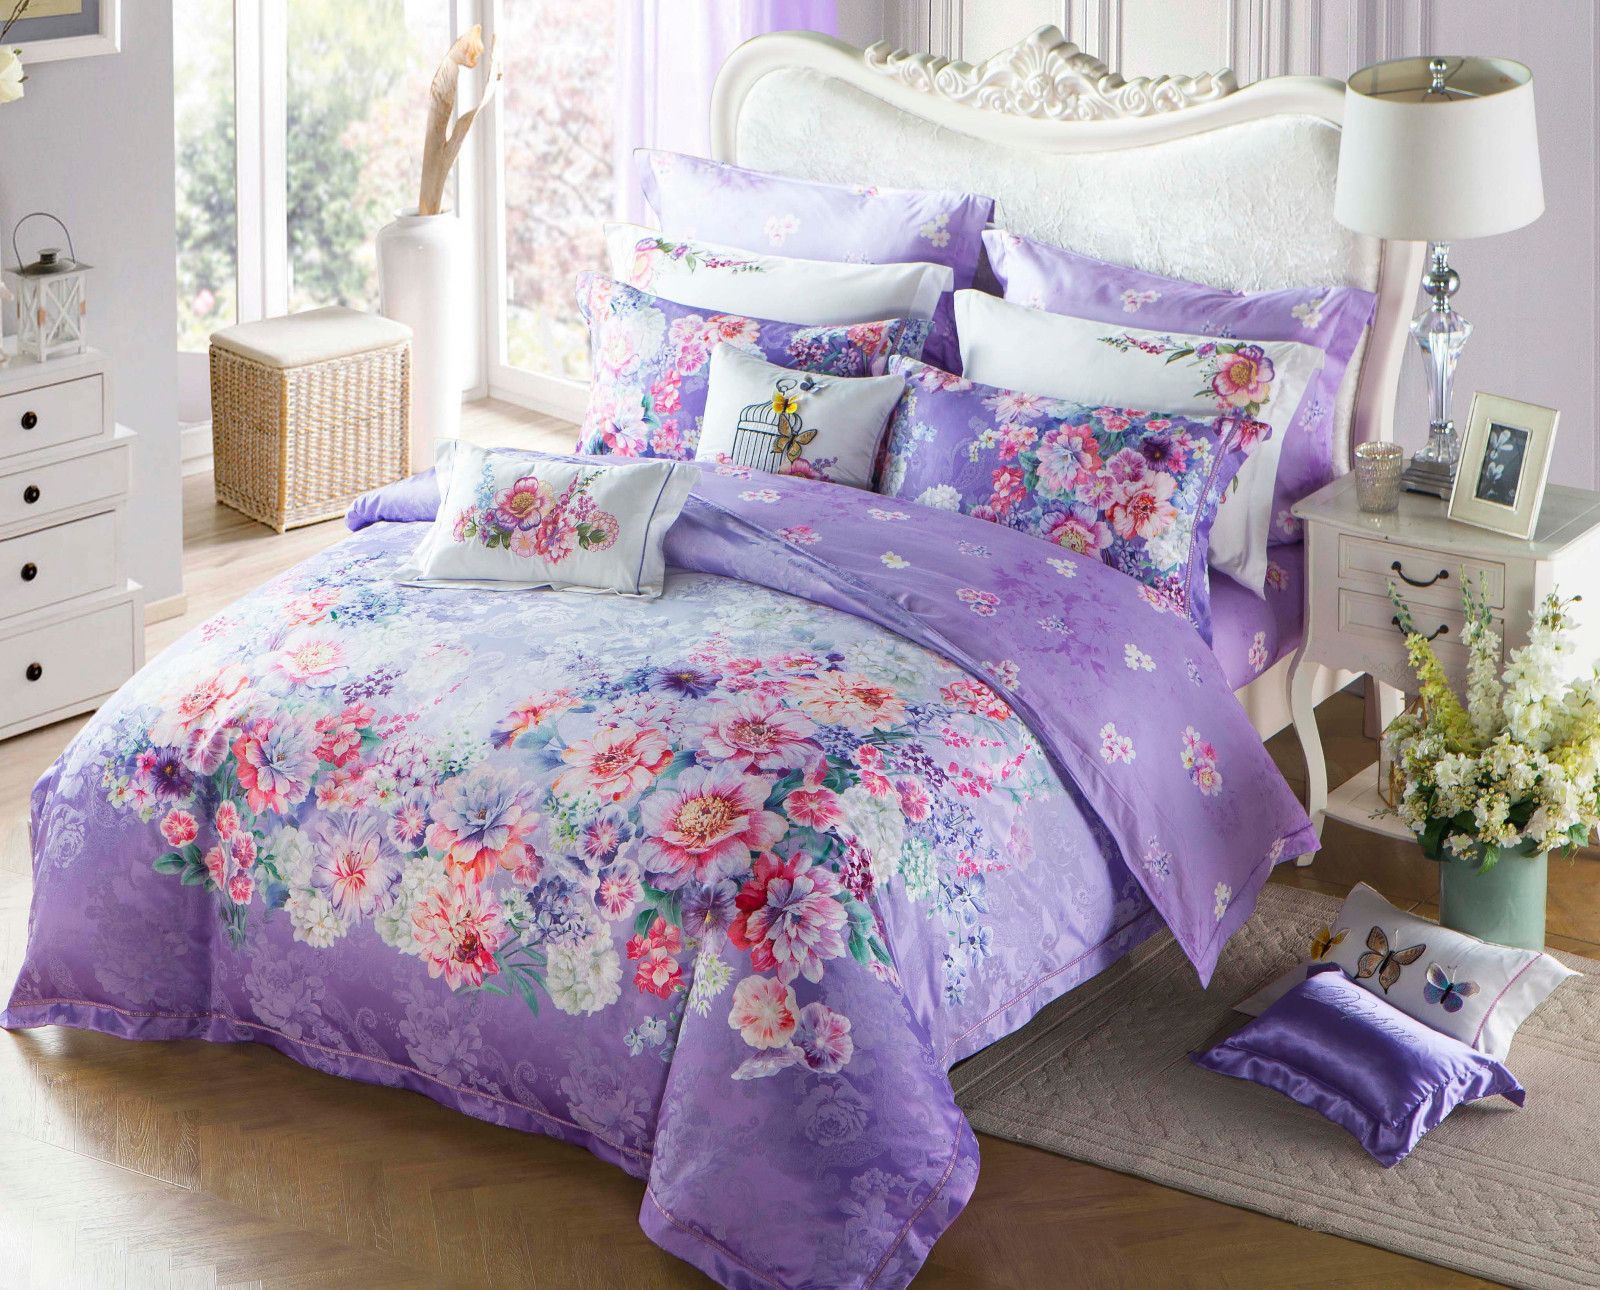 sheet jacquard duvet cover king and Daphne company